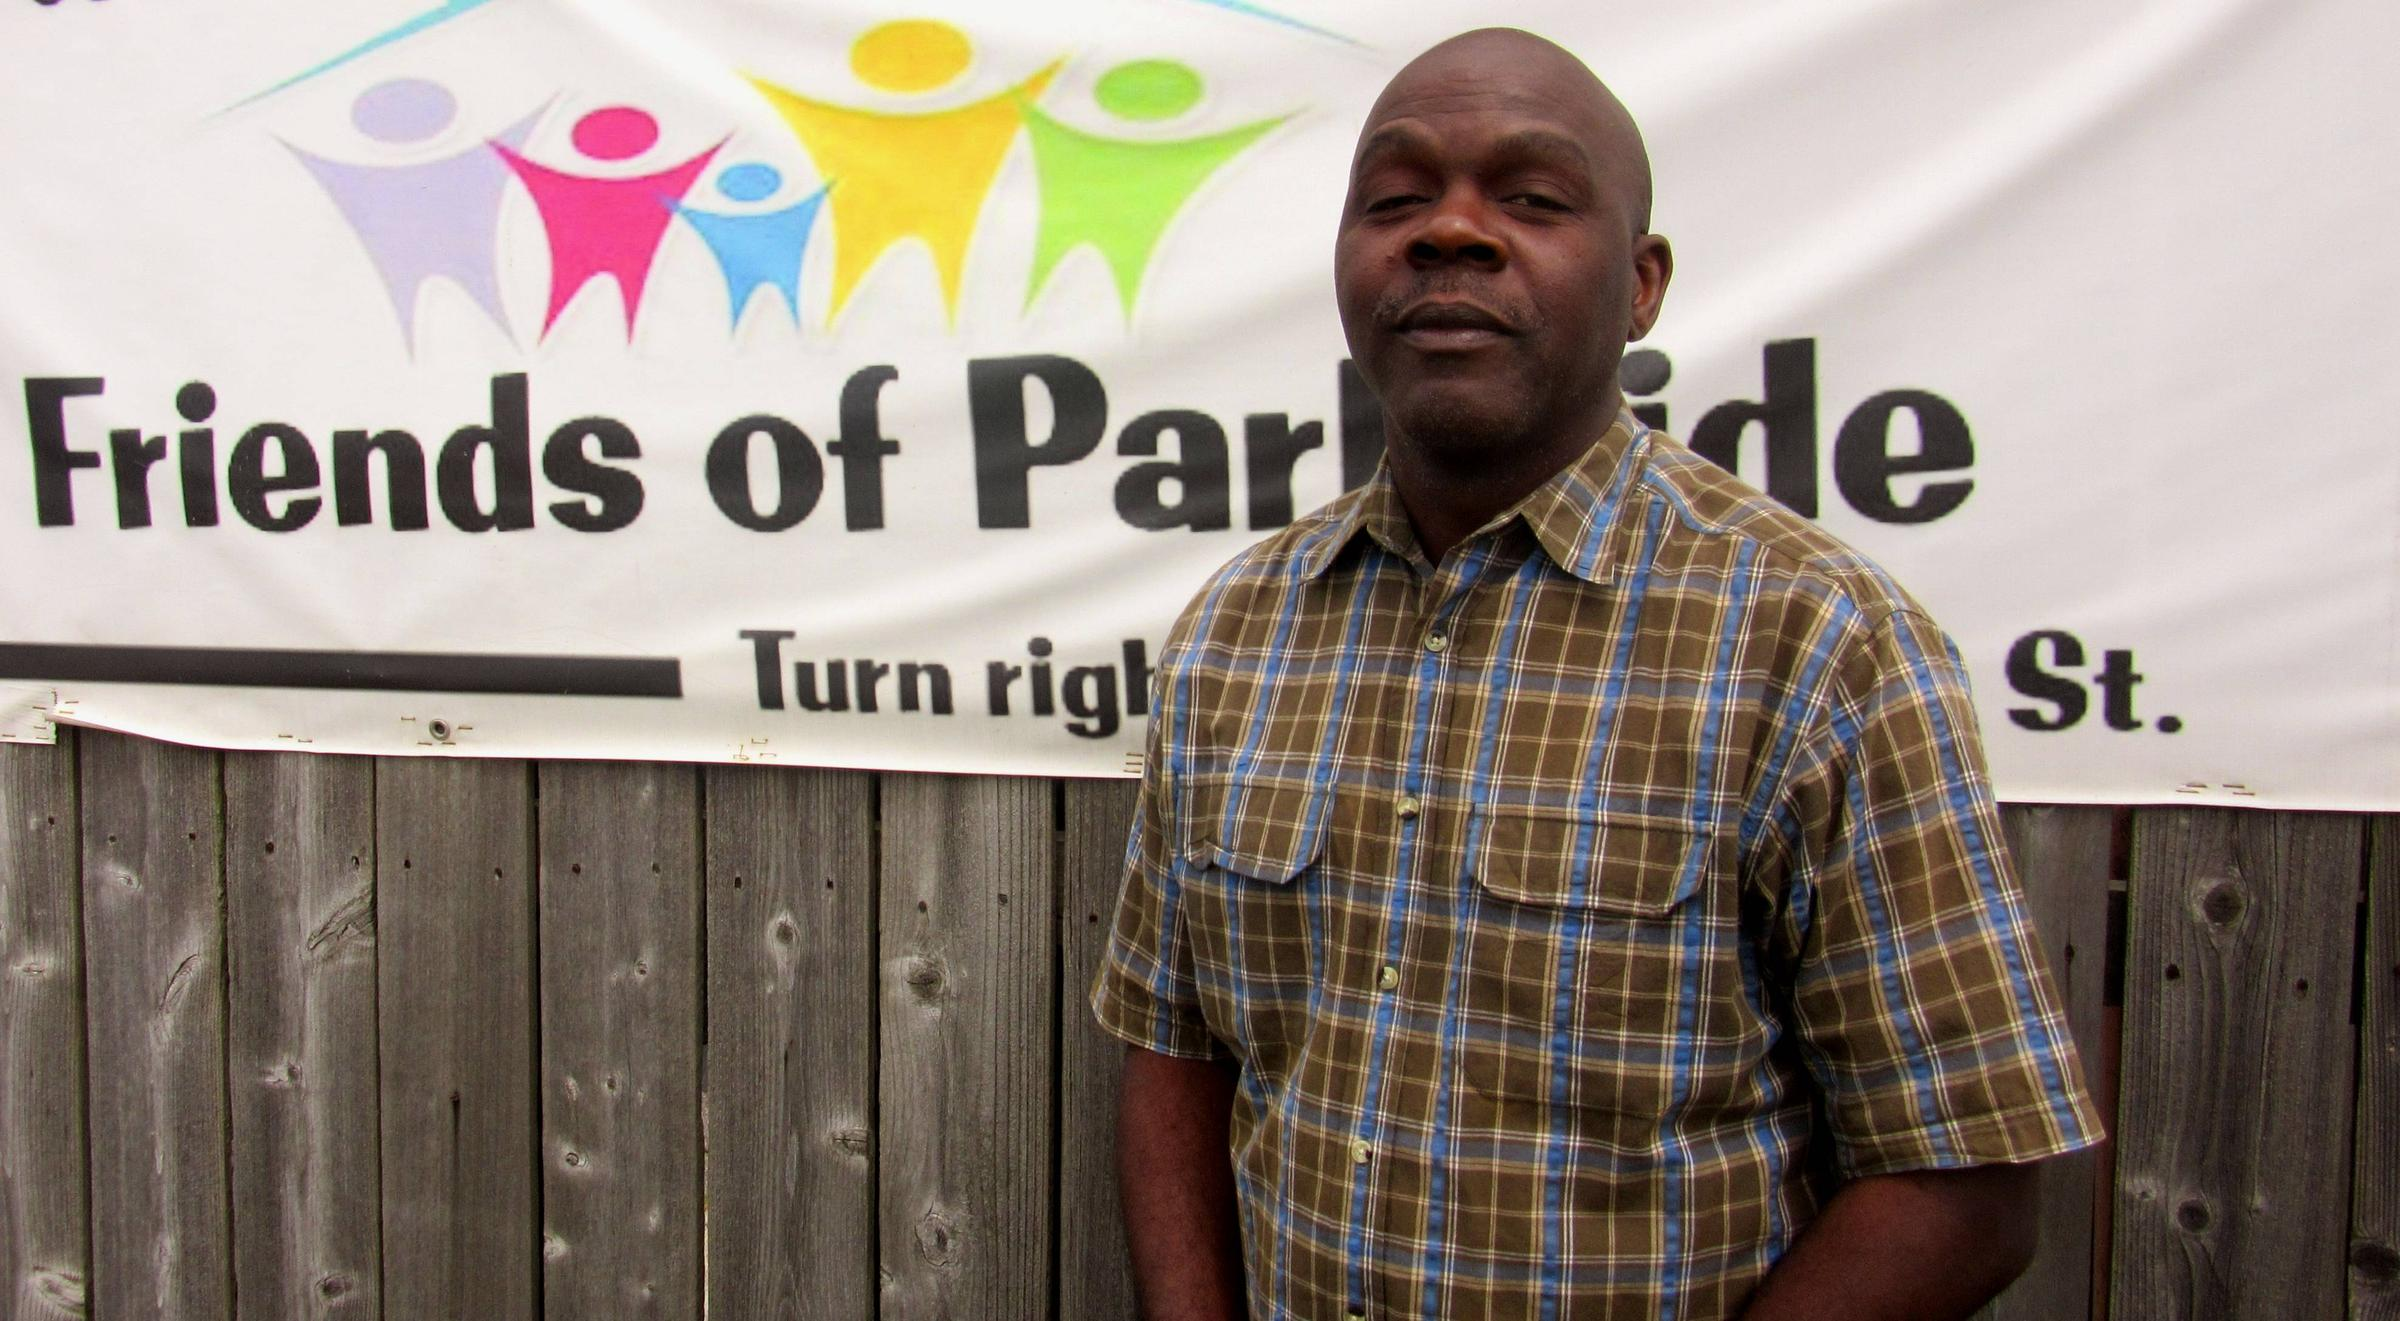 Zachary Rowe with Friends of Parkside believes public housing residents face bias by some employers.